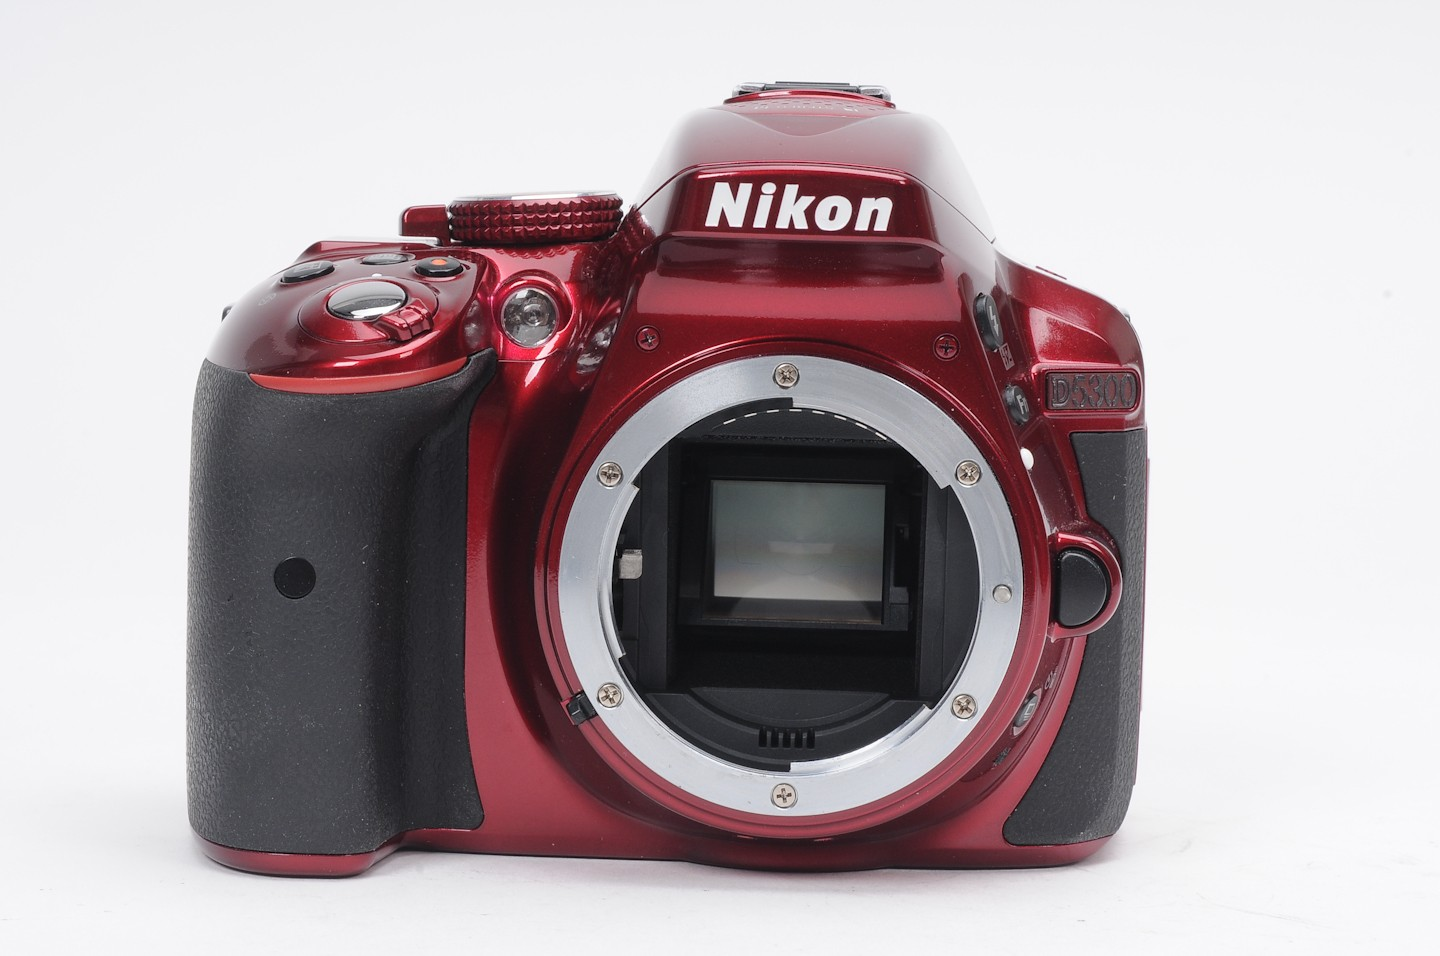 d5300 red image